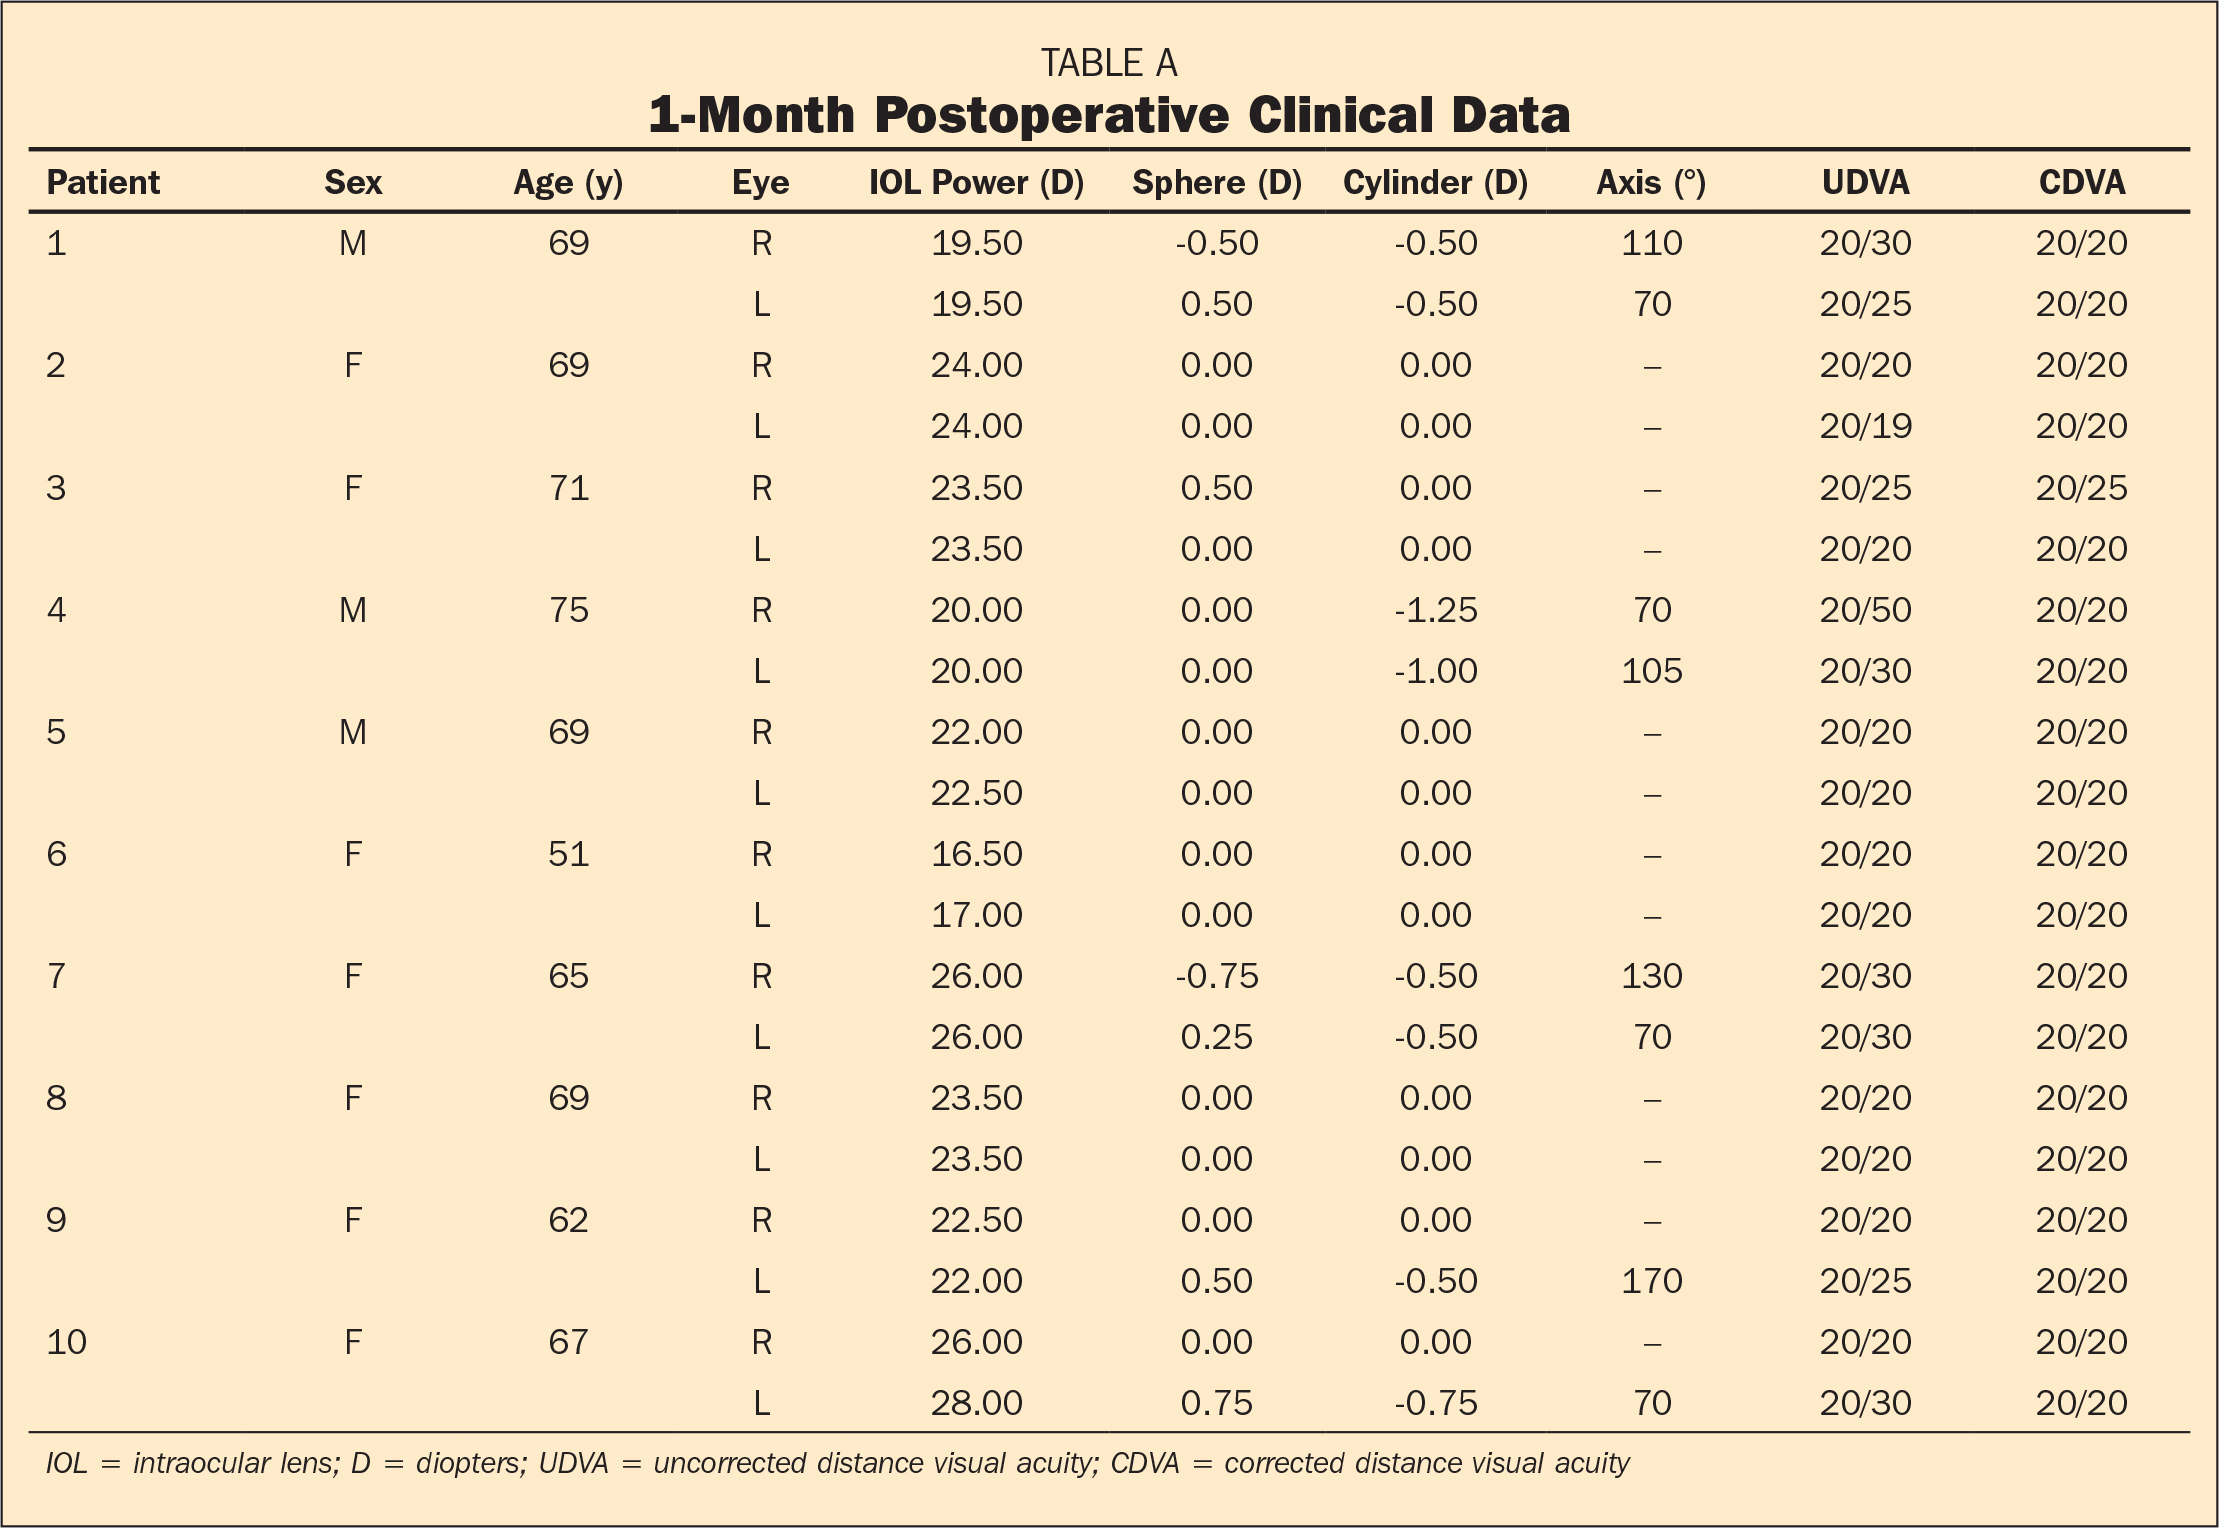 1-Month Postoperative Clinical Data